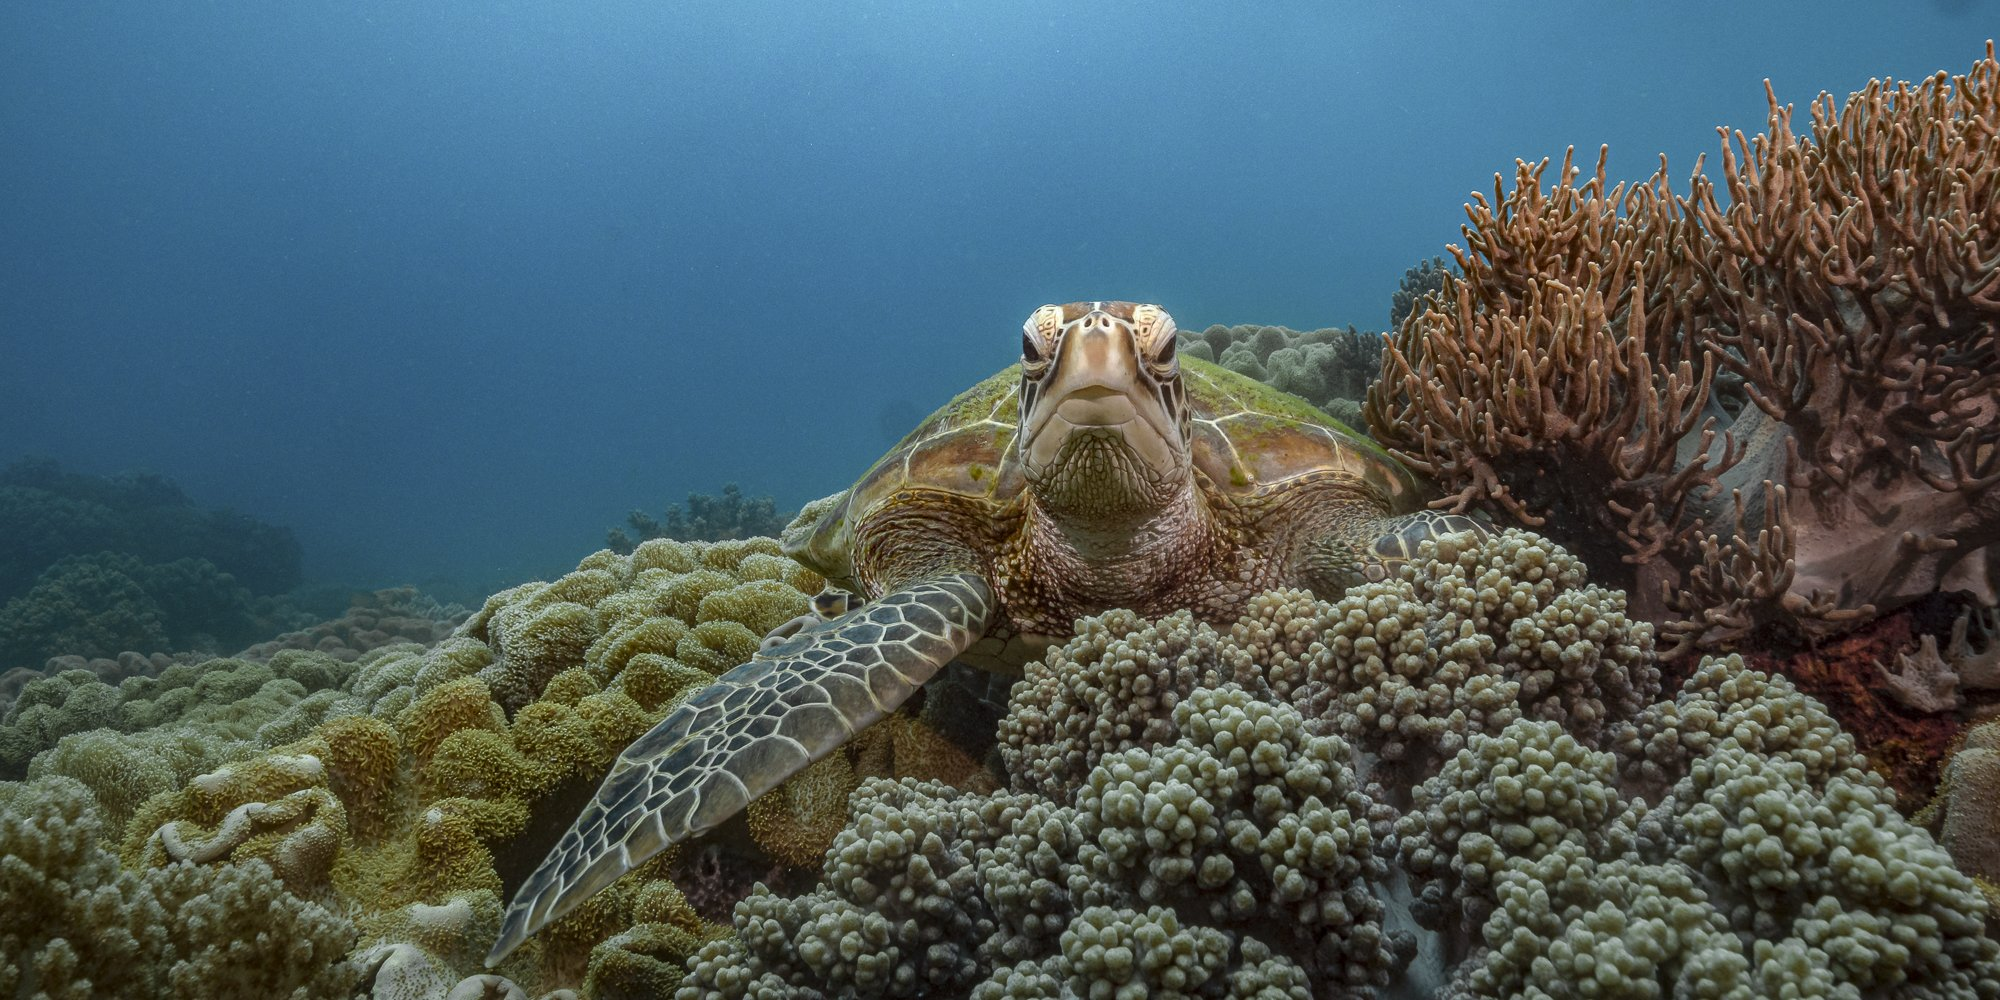 turtle, apo, underwater, diving, philippines, Савин Андрей